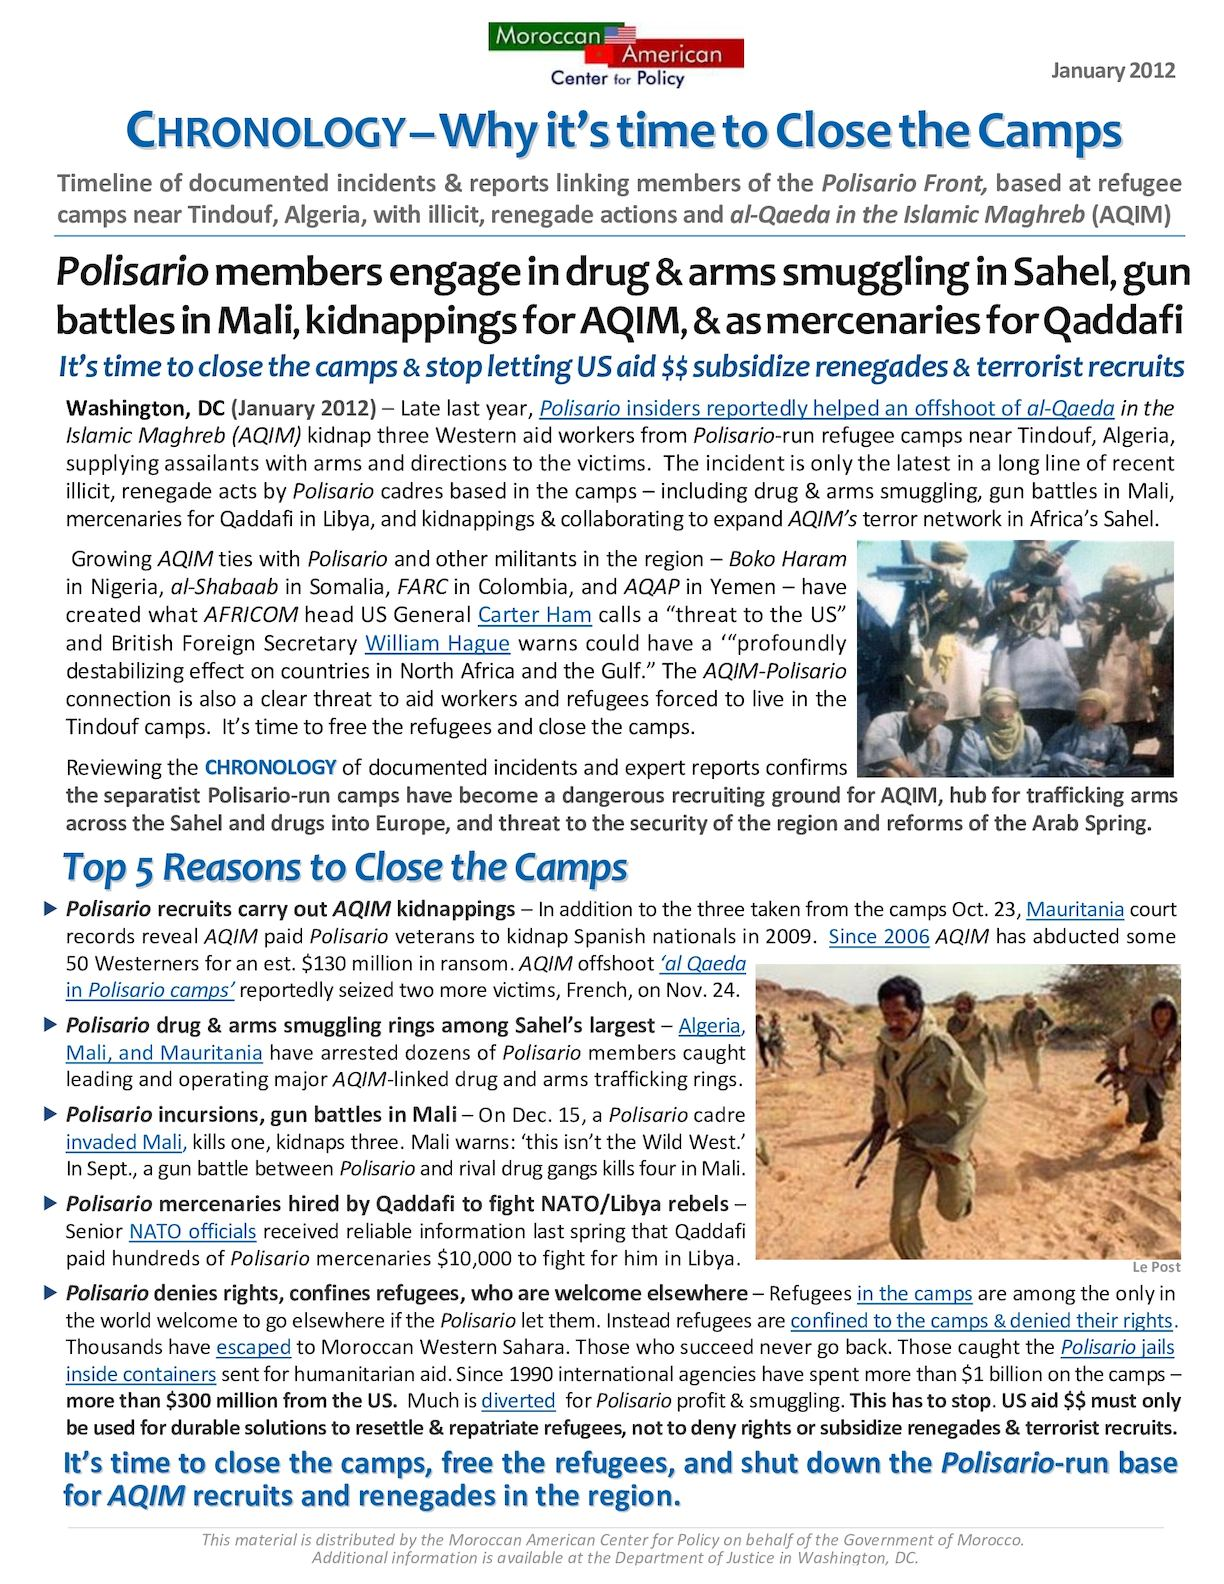 CHRONOLOGY - 'Polisario Renegades & AQIM Recruits- It's Time To Close The Camps' 1 20 12 DRAFT